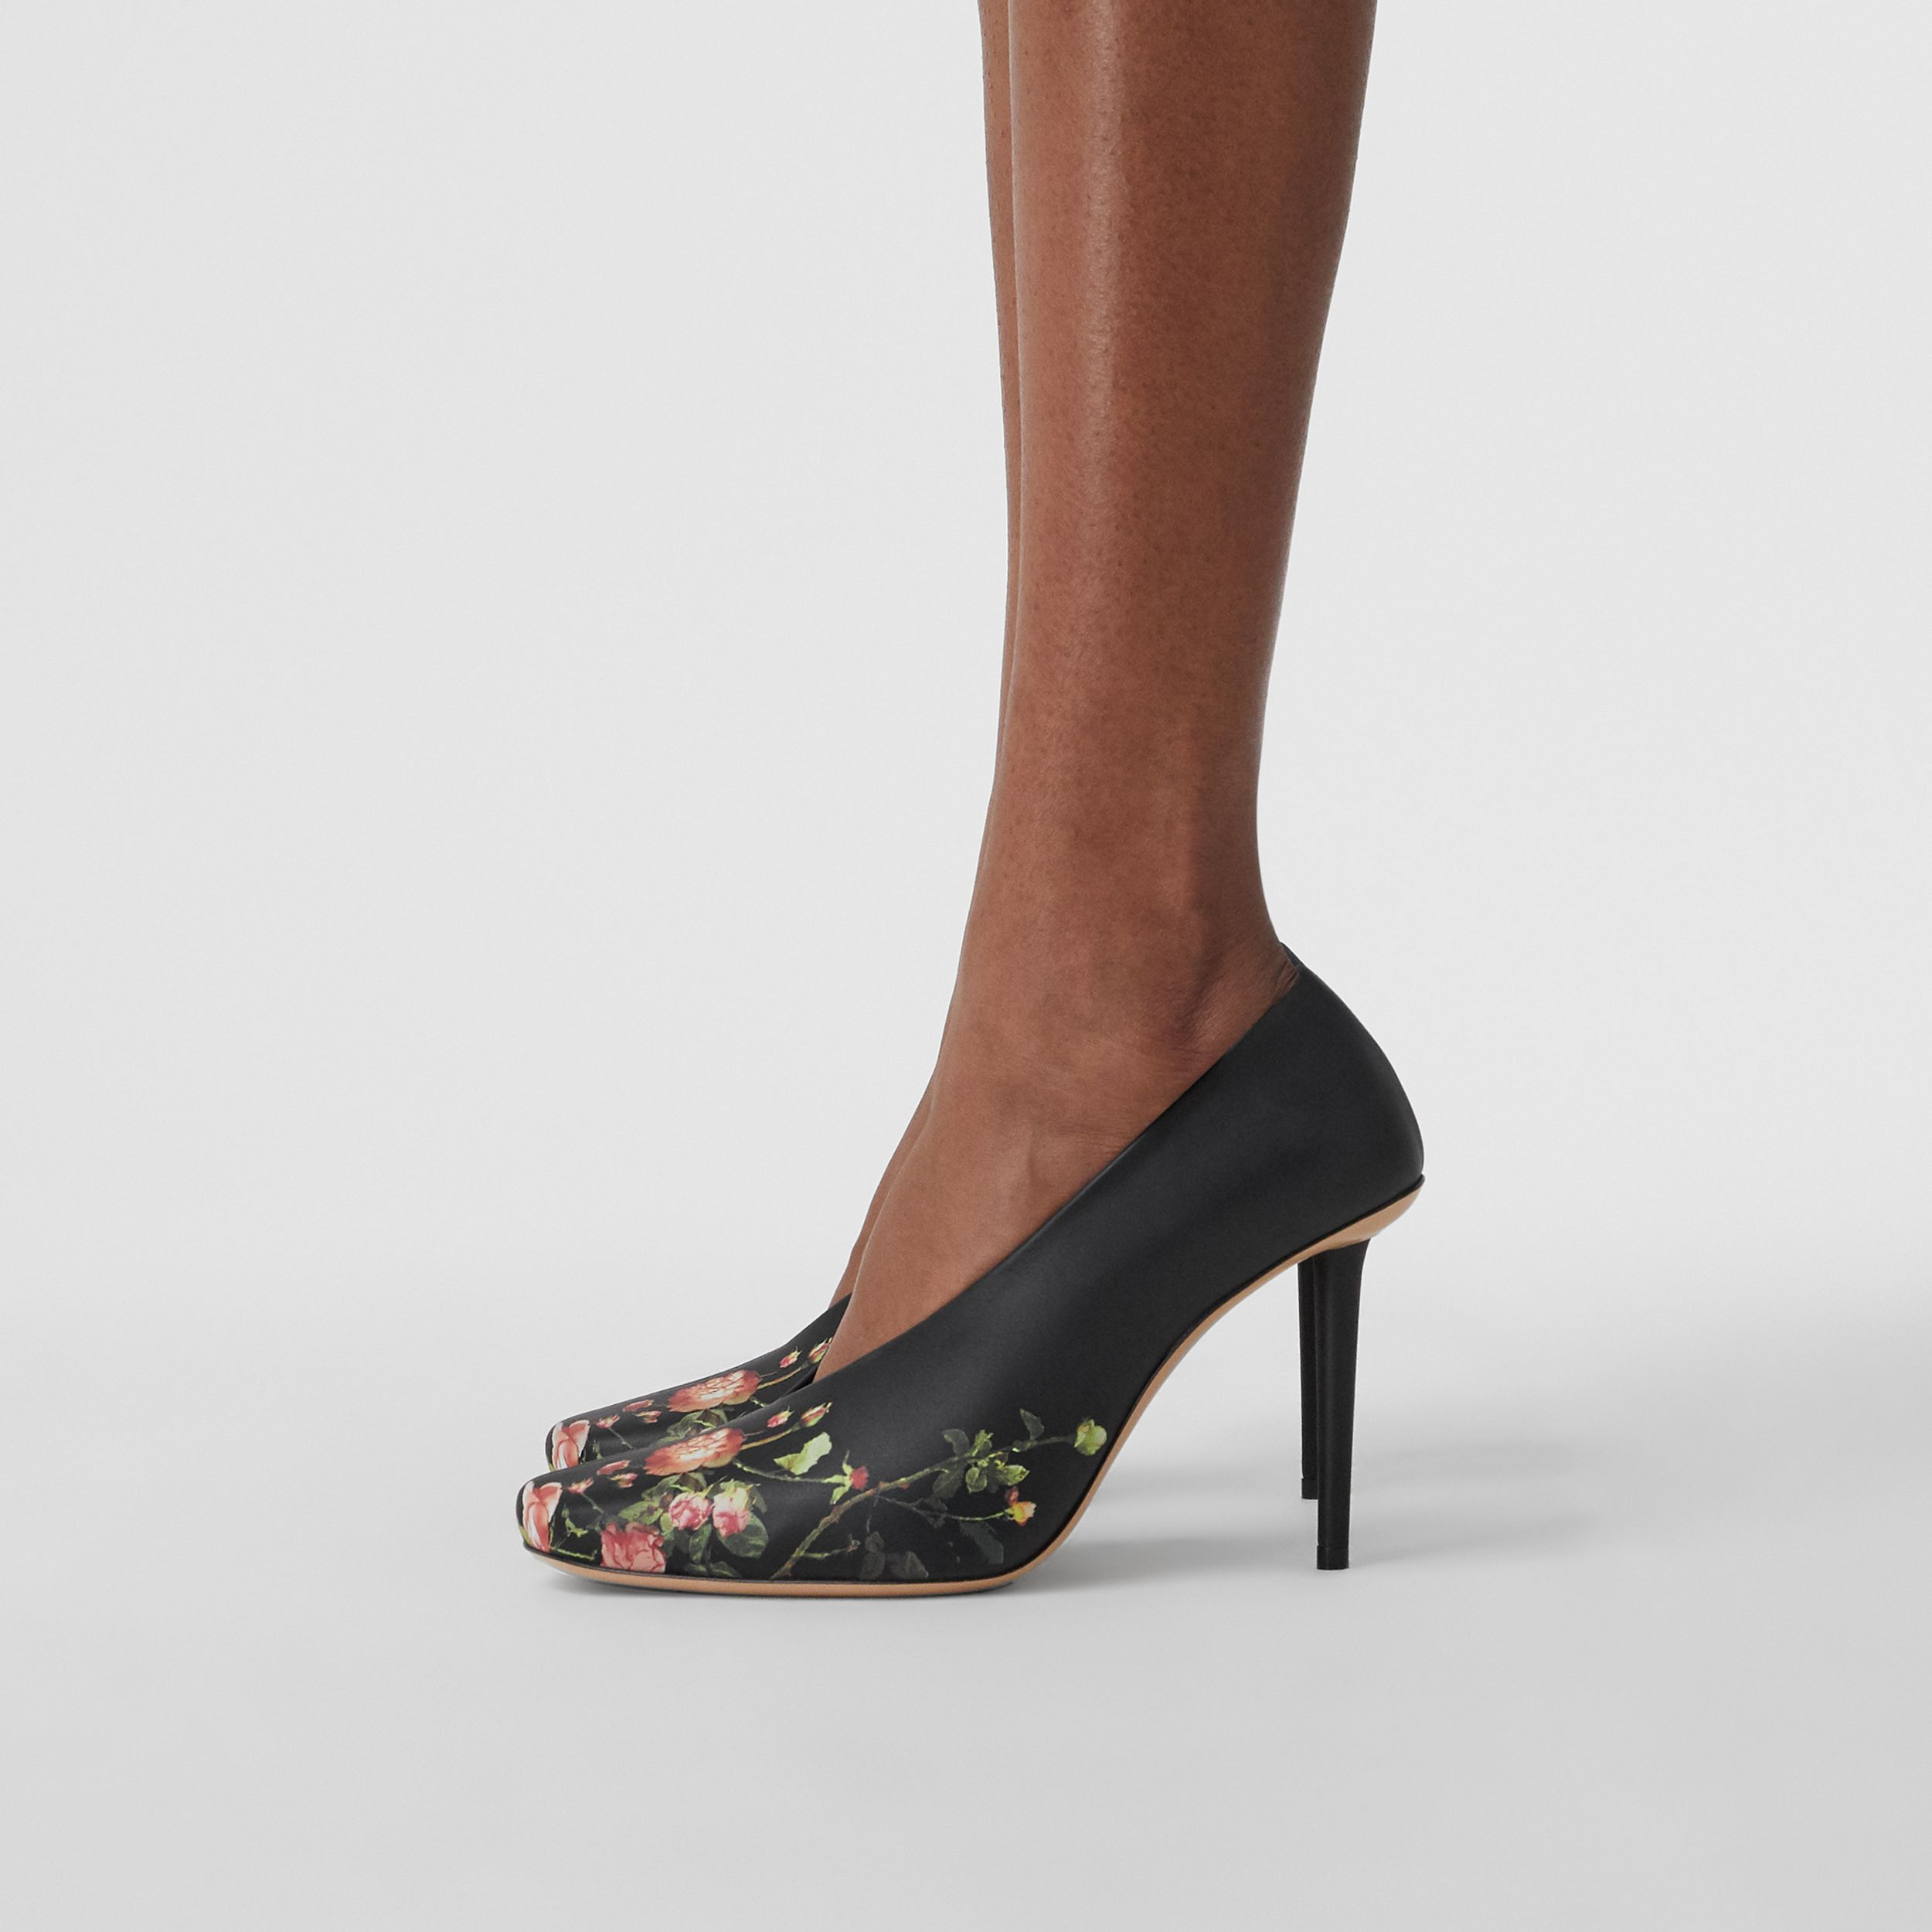 Rose Print Leather Sculptural Pumps in Floral - Women | Burberry - 3